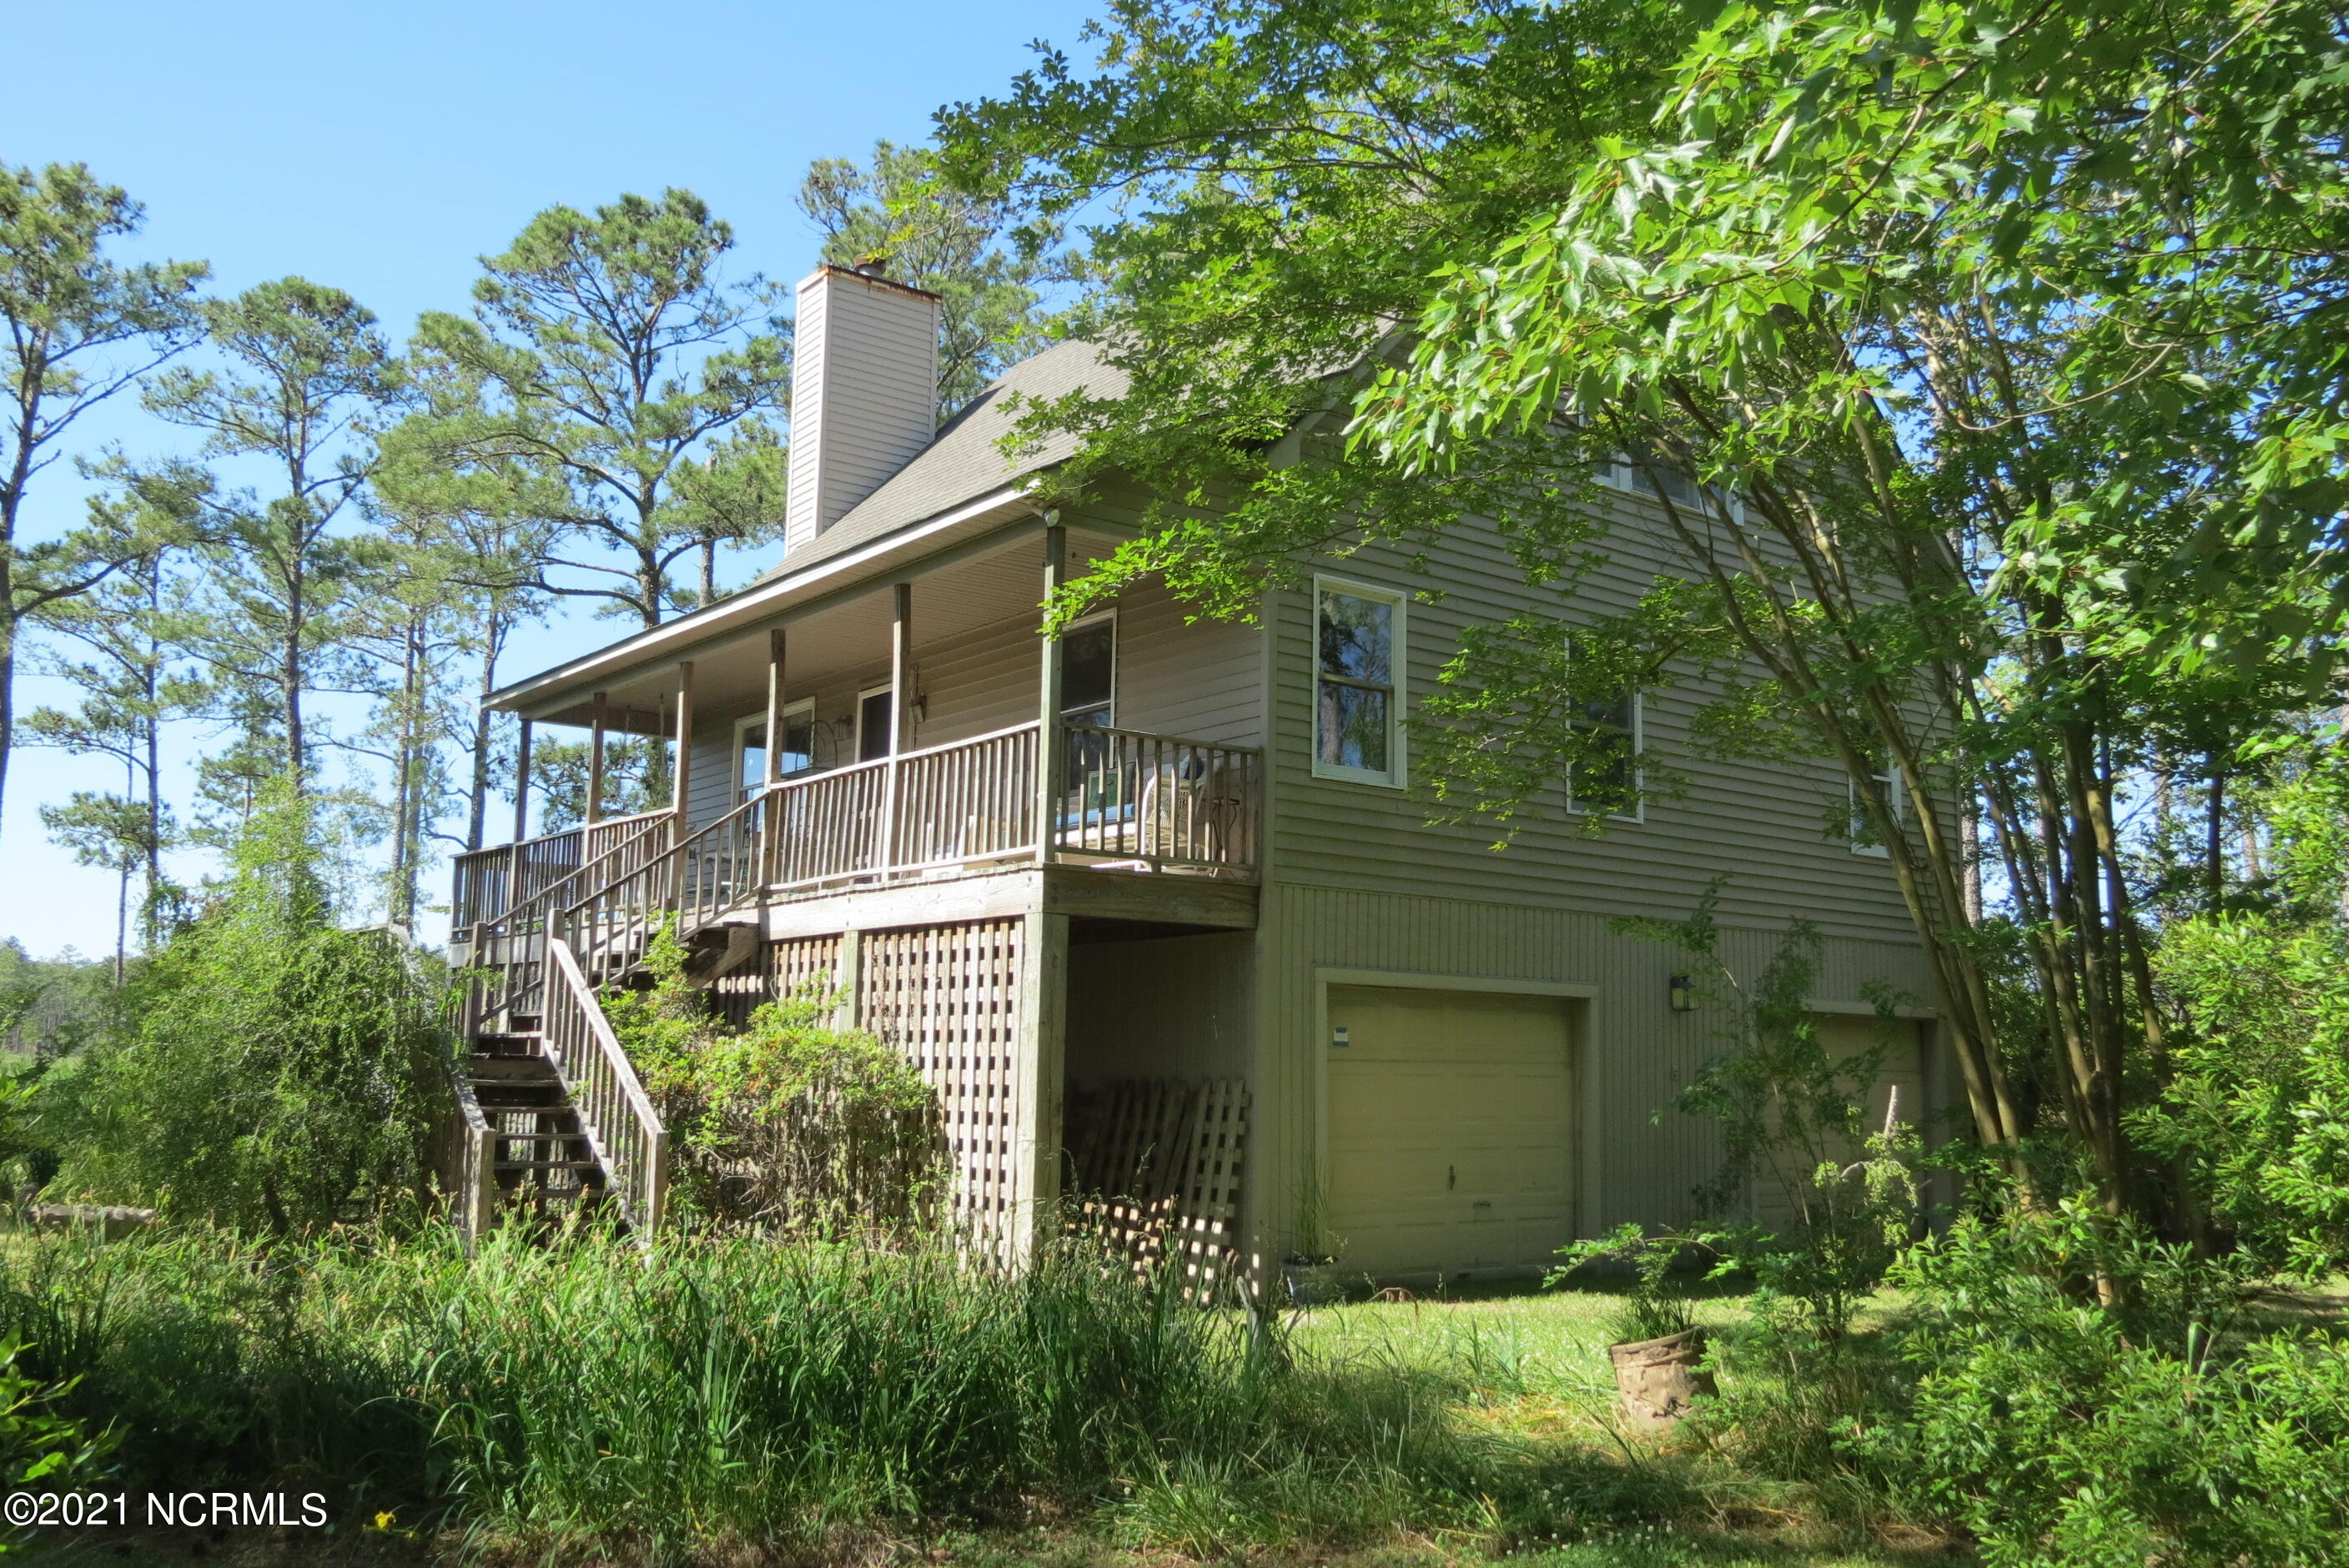 Your enticing waterfront getaway on deep and protected Spring Creek awaits, literally ''just around the corner'' from the ICW & the endless waters of the Pamlico Sound! Situated with utmost privacy on over 4.4 acres of deeply wooded waterfront acres, this two bedroom cottage is ready to deliver you a setting unlike any other! The moment you drive onto your long private lane, flanked by  the mature avenue of trees, you'll feel the cares of the world melt away. Your arrival at the residence, elevated gracefully above the fray, is welcoming & embraced by the naturalized surroundings... Allowing an unfolding of the delightful water views, which become more apparent and compelling with each step up the entry staircase. The amazing amount of creek frontage you possess (over 640' !) allows a sense of control over all surrounding vistas and a choice of locations from which to construct your pier. The home is low-maintenance and has served perfectly for many years as a family and artist's retreat. The abundant scenery and wildlife offers endless subjects for enjoyment, photography or painting. As you enter, the dramatic ceiling vaults to over 20' to the sunny loft area. The living room has a fireplace and communicates openly with the cheerful dining area and the efficient cottage kitchen - all with great views across the wraparound porch/deck to the waters beyond! A private master bedroom occupies a quiet corner and it has the laundry closet & bath (w/ whirlpool and shower) close by. The upstairs operates as a huge suite, with full bath, large bedroom and lofted family area, which has been used for extra guests. Plenty of storage in the house and under, too. The understory has two garage doors & potential workshop area, too. The screened porch is off the dining area and would be splendid for al-fresco meals. The deck is sunny and connects to a covered seating porch. Lots of expansion room and acreage here at your private waterfront ''Shangri-La'' ! Great fishing & boating!